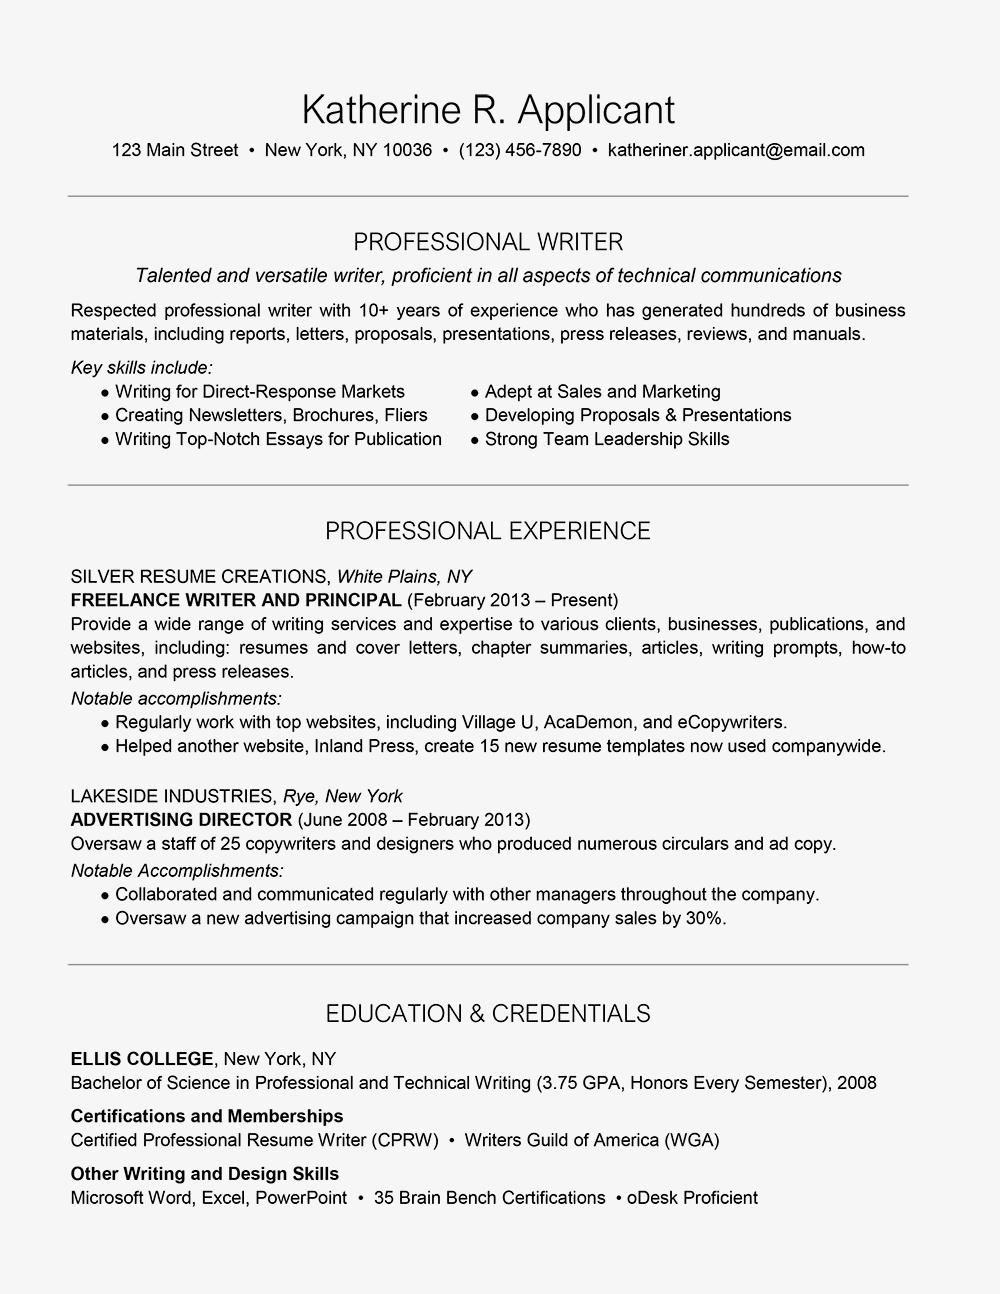 Applicant Tracking System Resume - Professional Writer Resume Example and Writing Tips